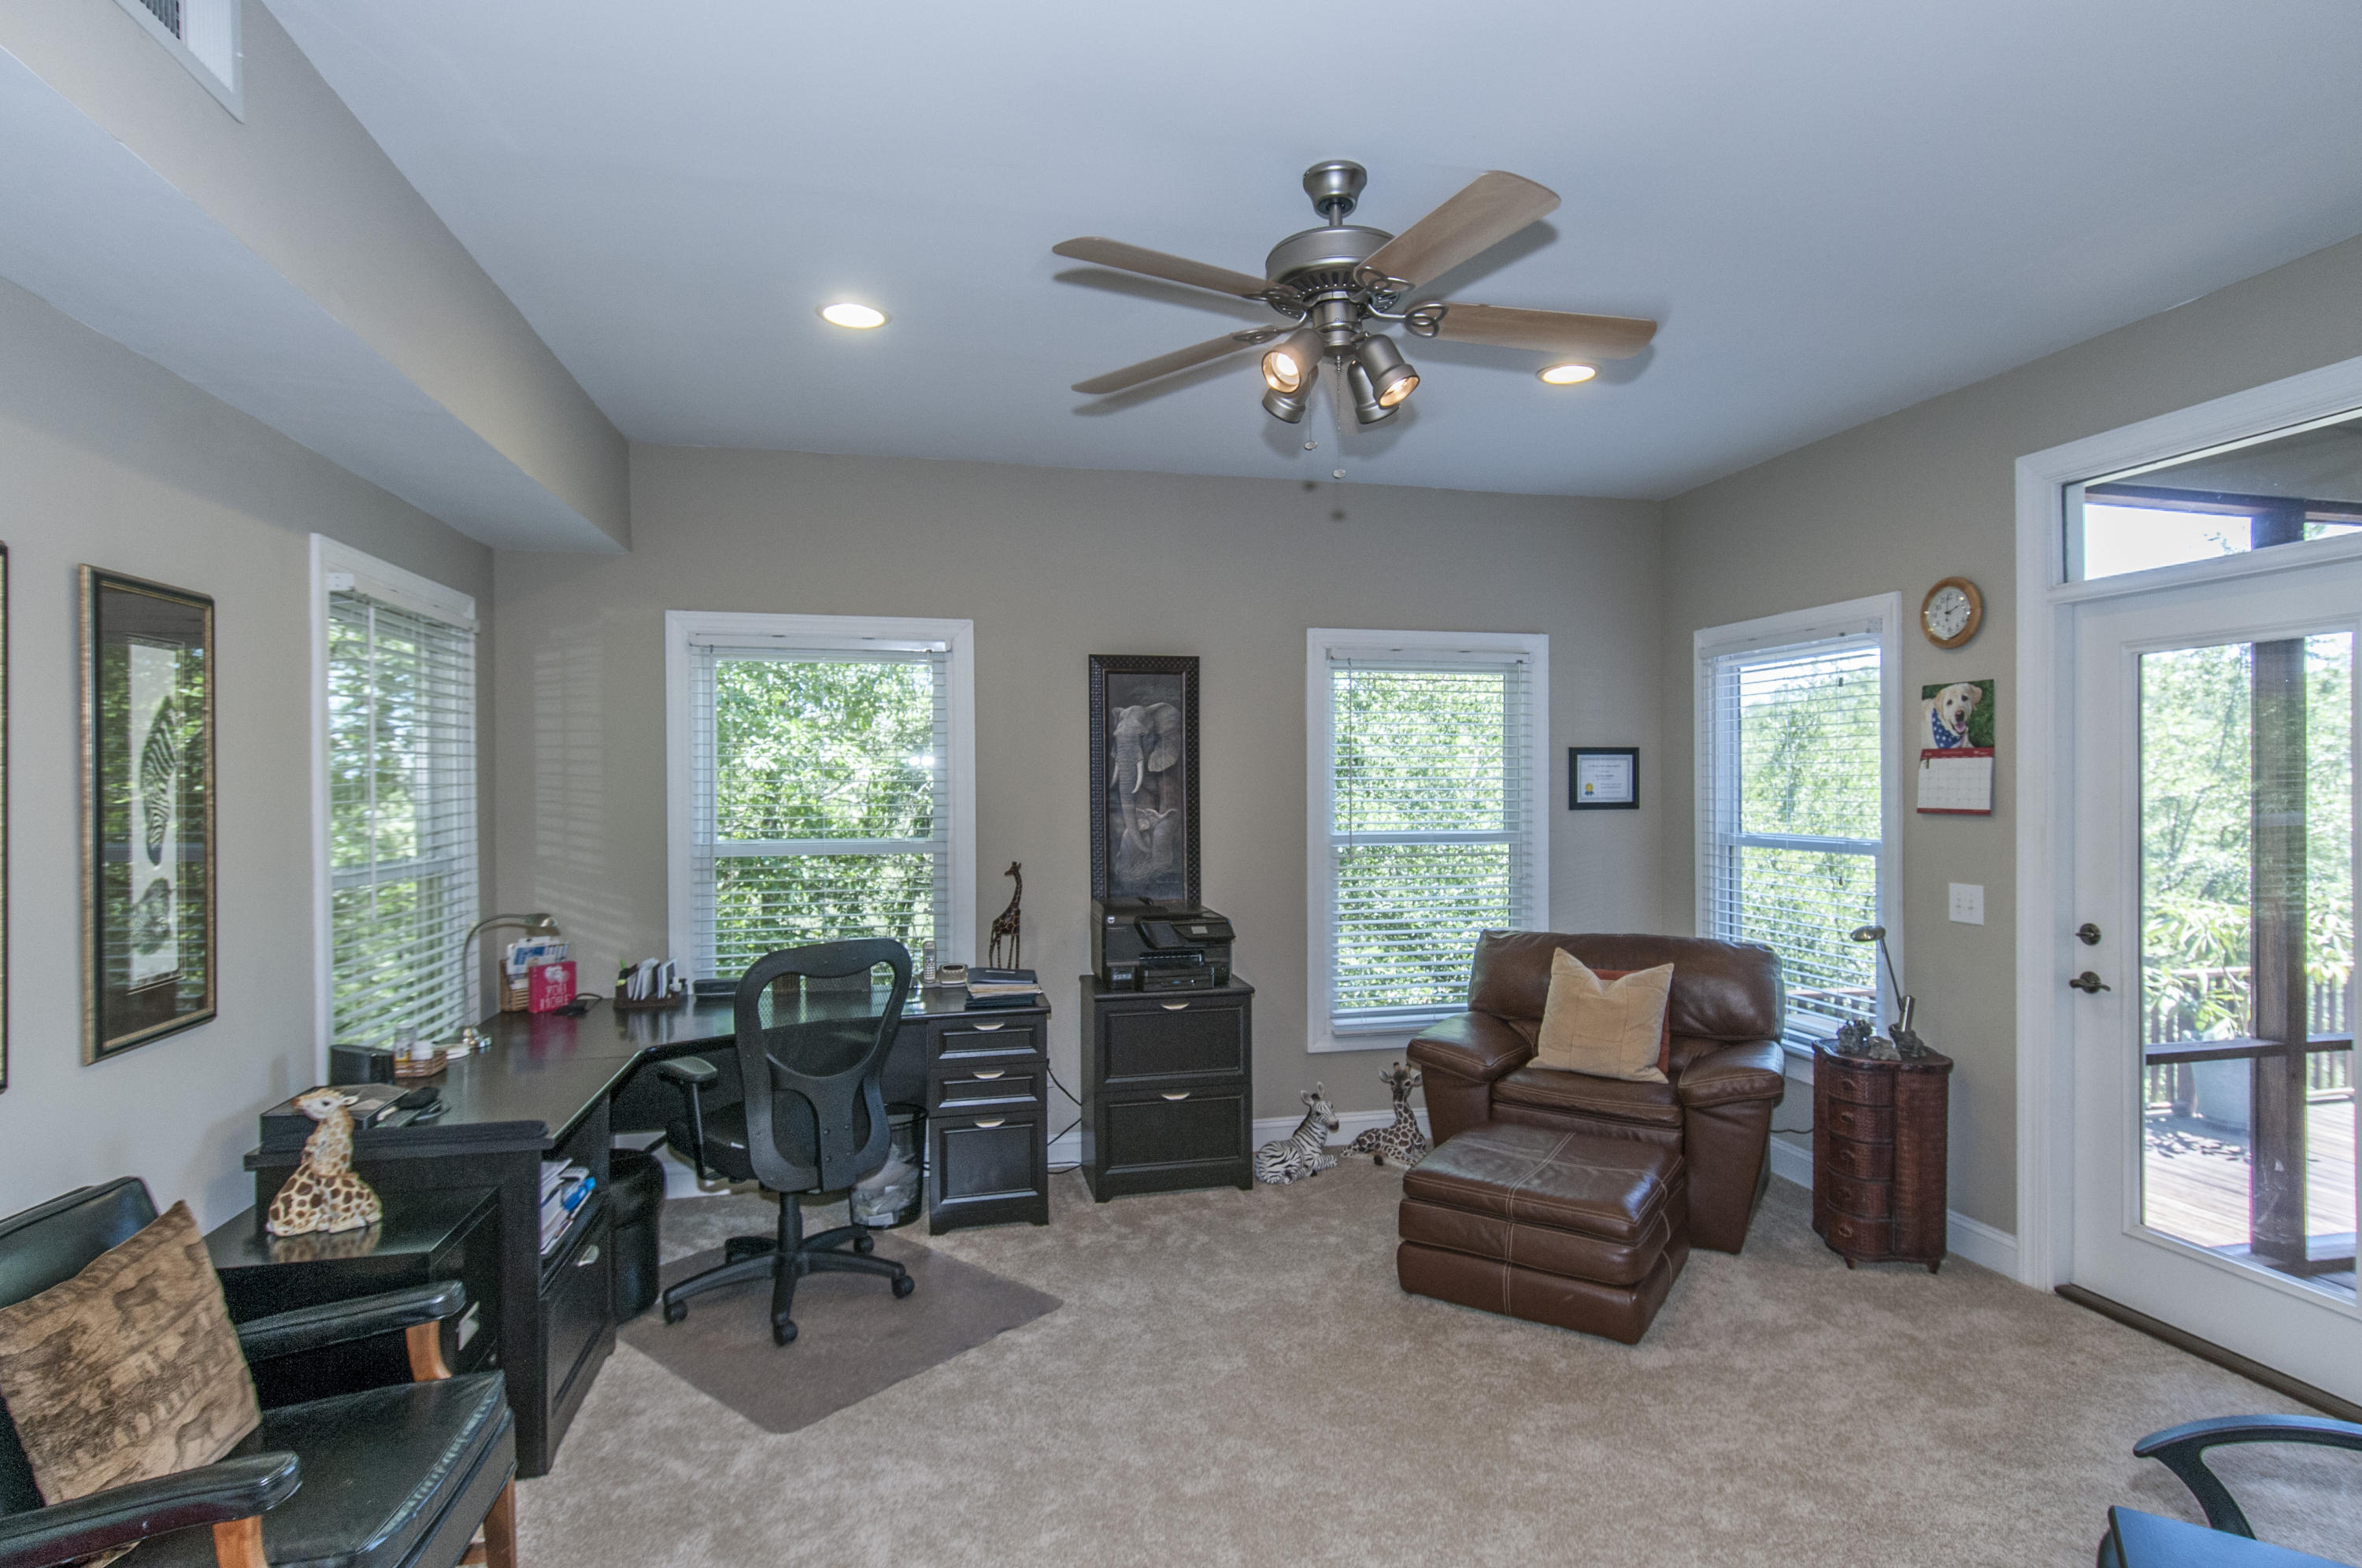 The Marshes at Rushland Landing Homes For Sale - 3022 Rushland Mews, Johns Island, SC - 12